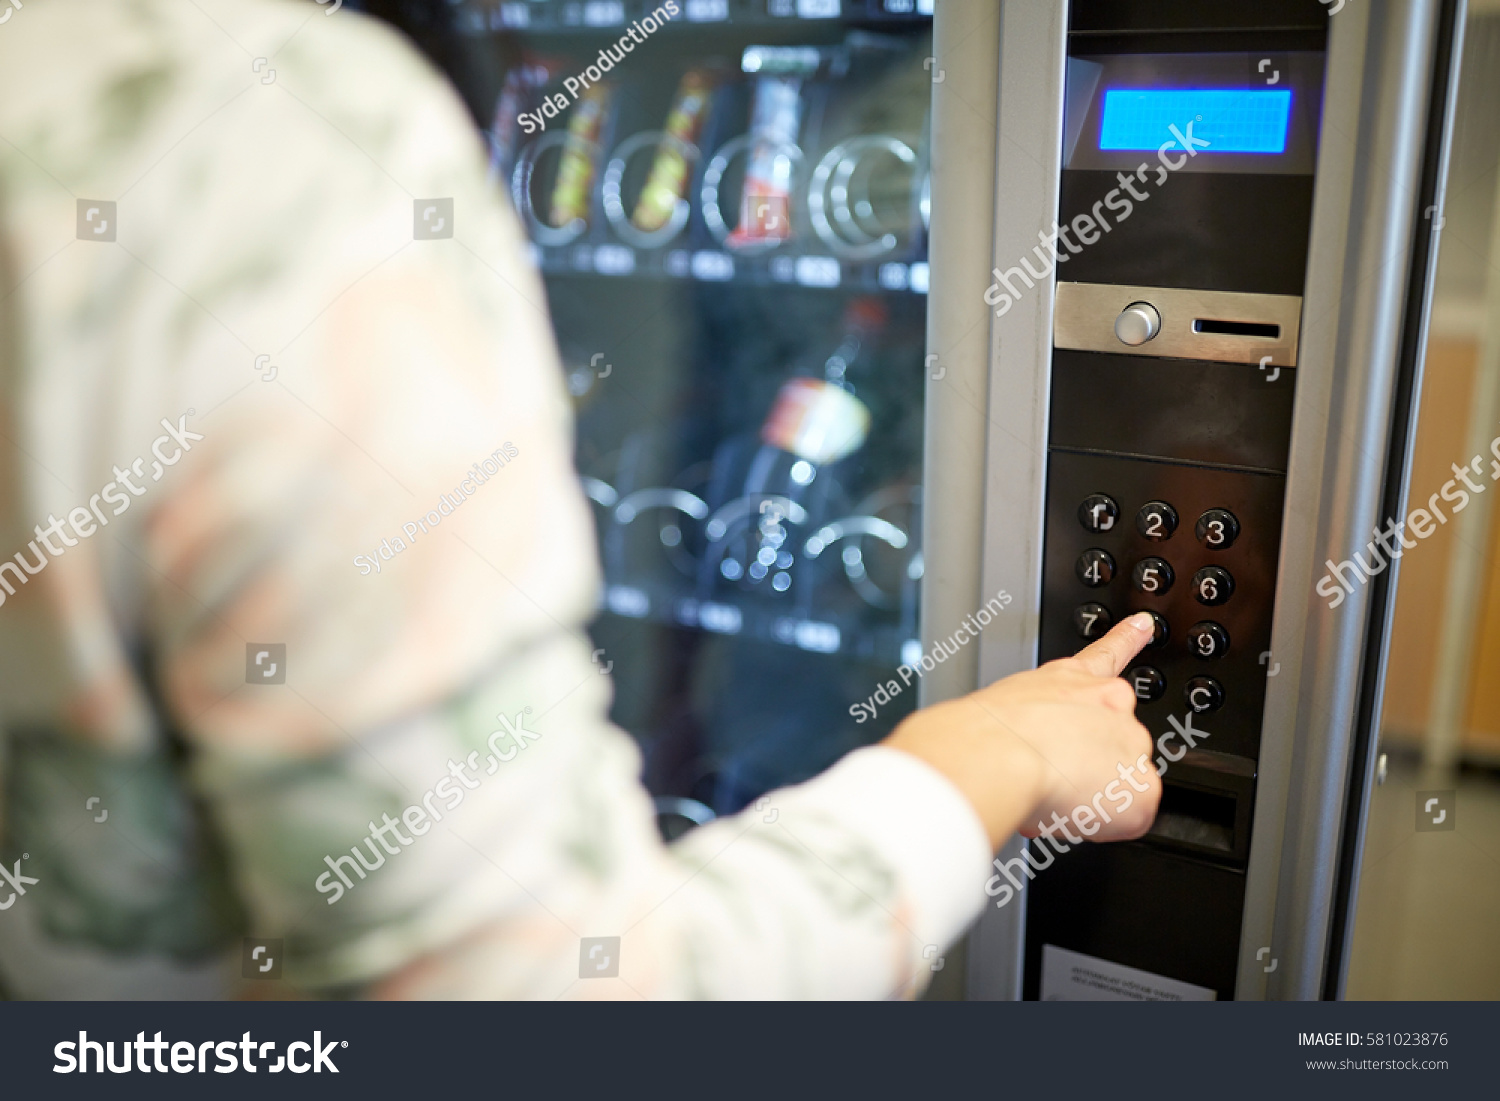 sell, technology and consumption concept - hand pushing button on vending machine operation panel keyboard #581023876